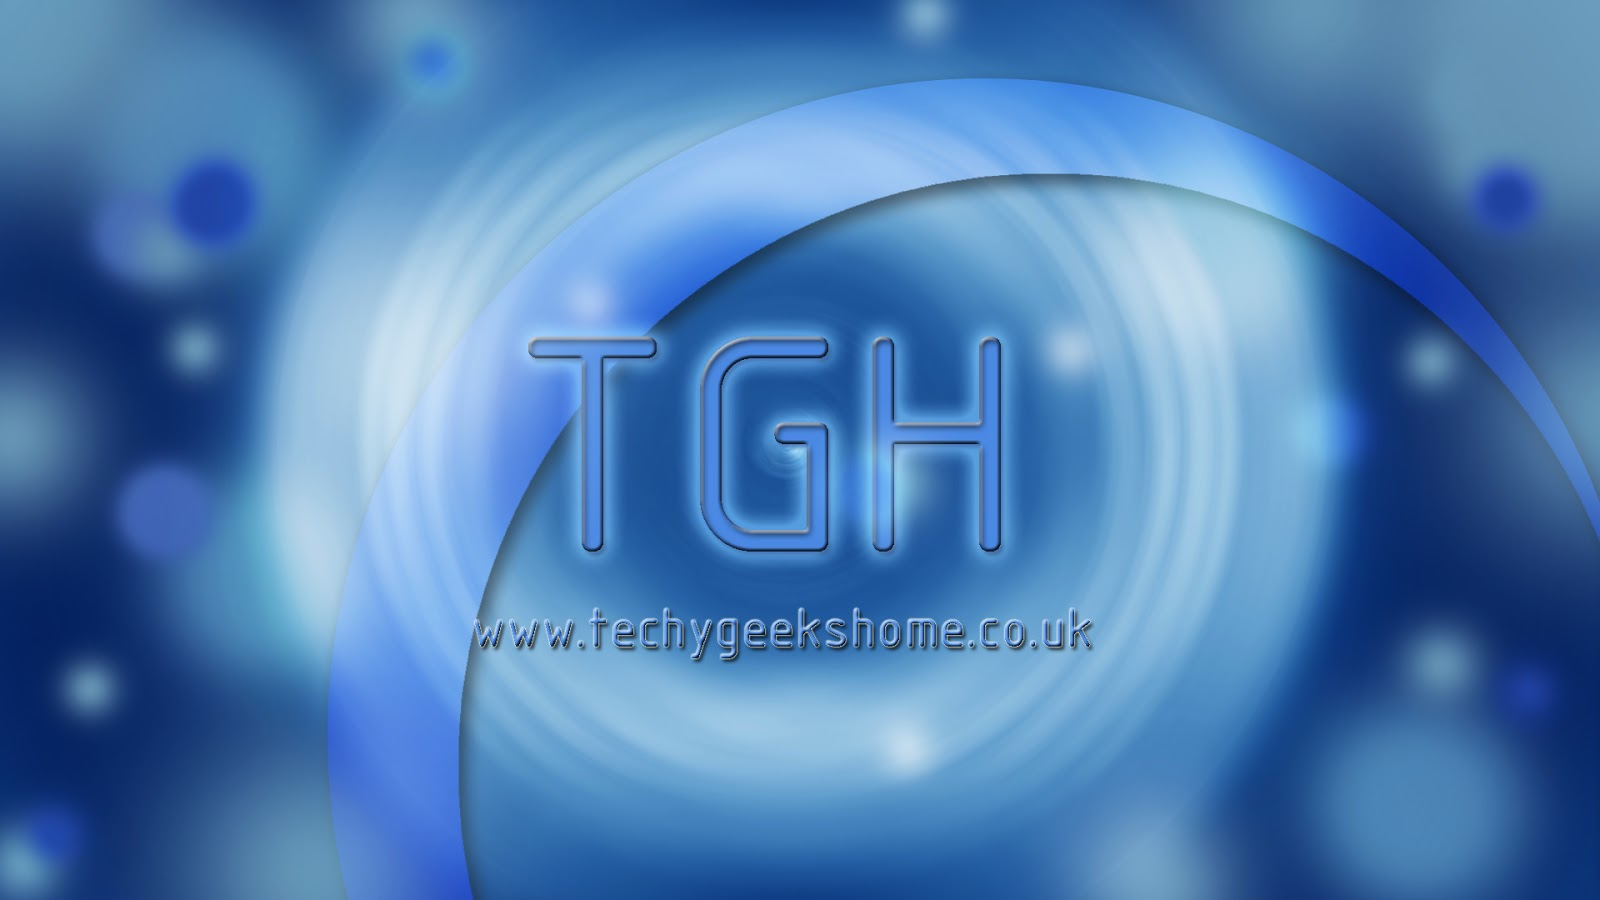 TechyGeeksHome Official Desktop Wallpaper 1